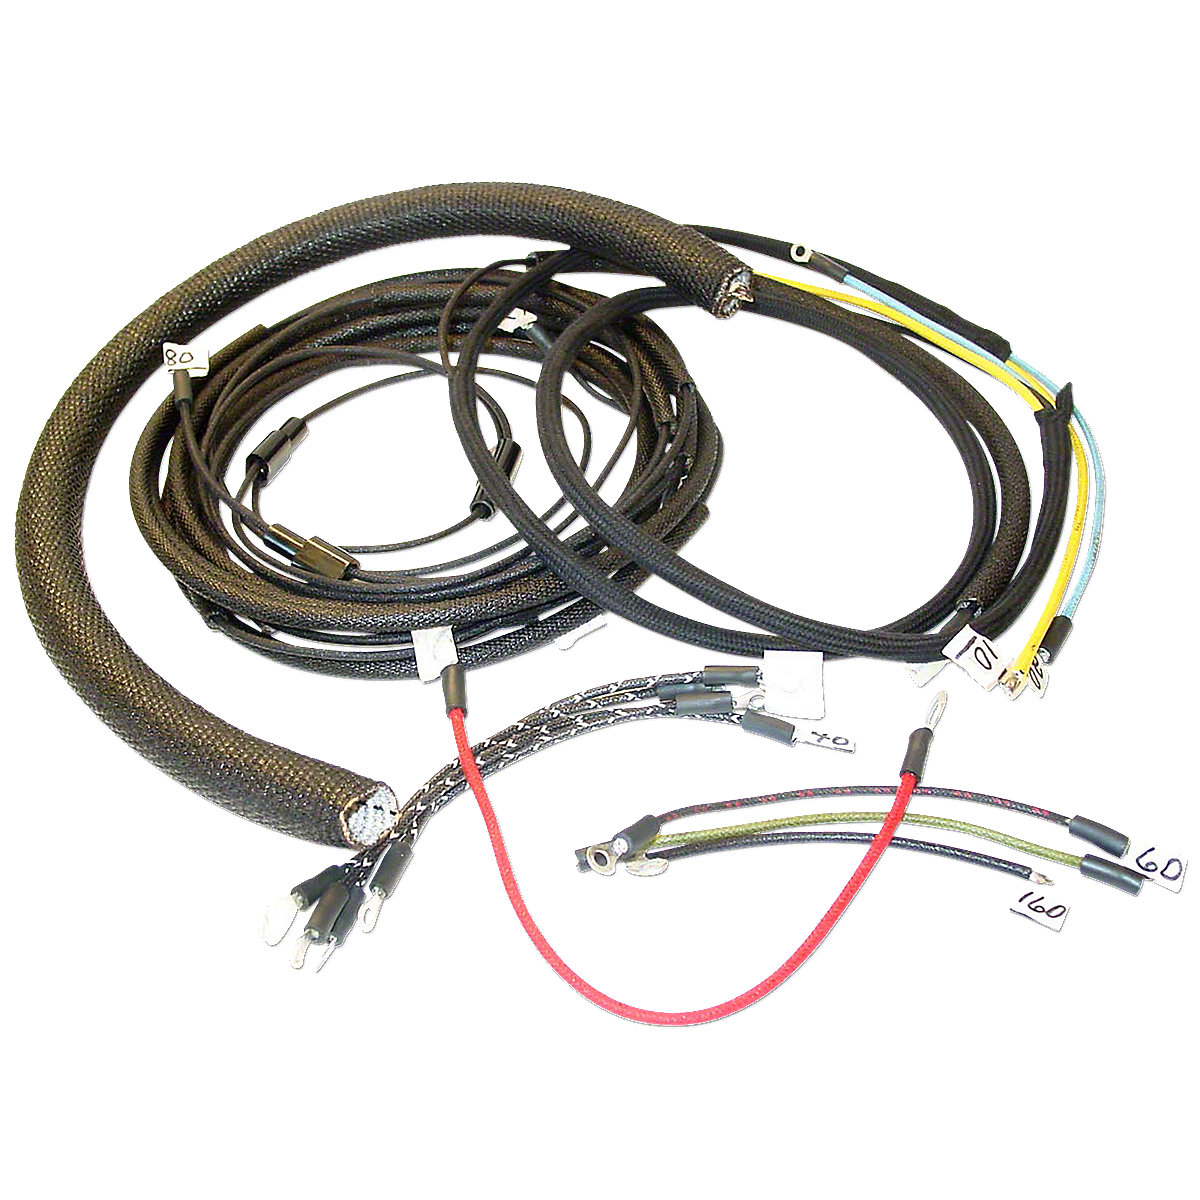 Wiring Harness For Massey Harris: 30, 30K.